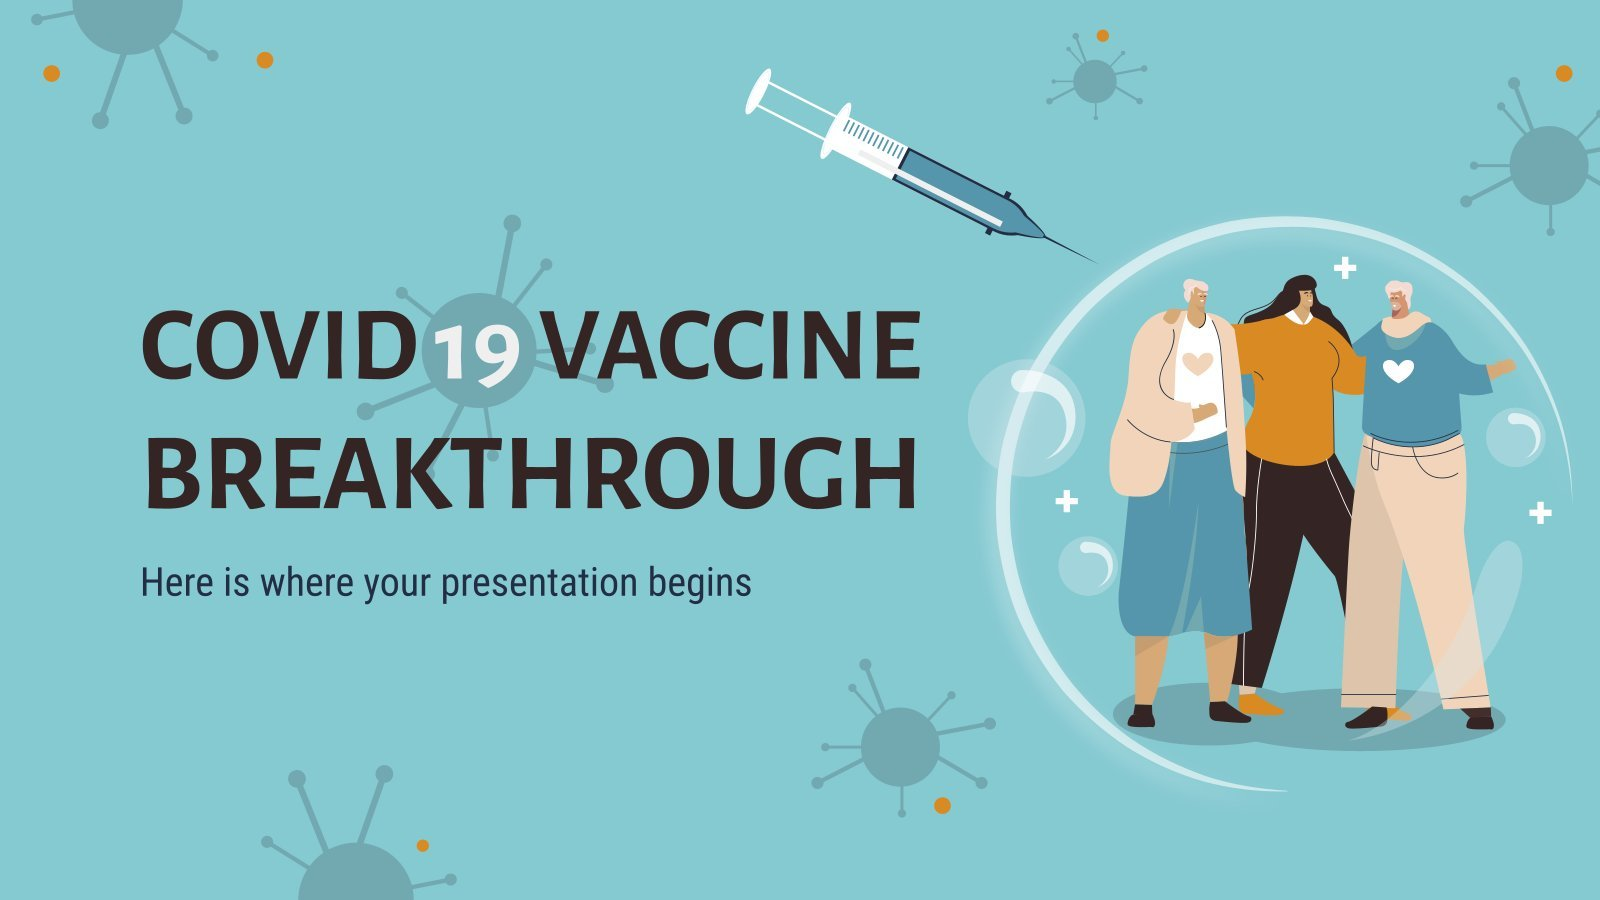 COVID-19 Vaccine Breakthrough presentation template